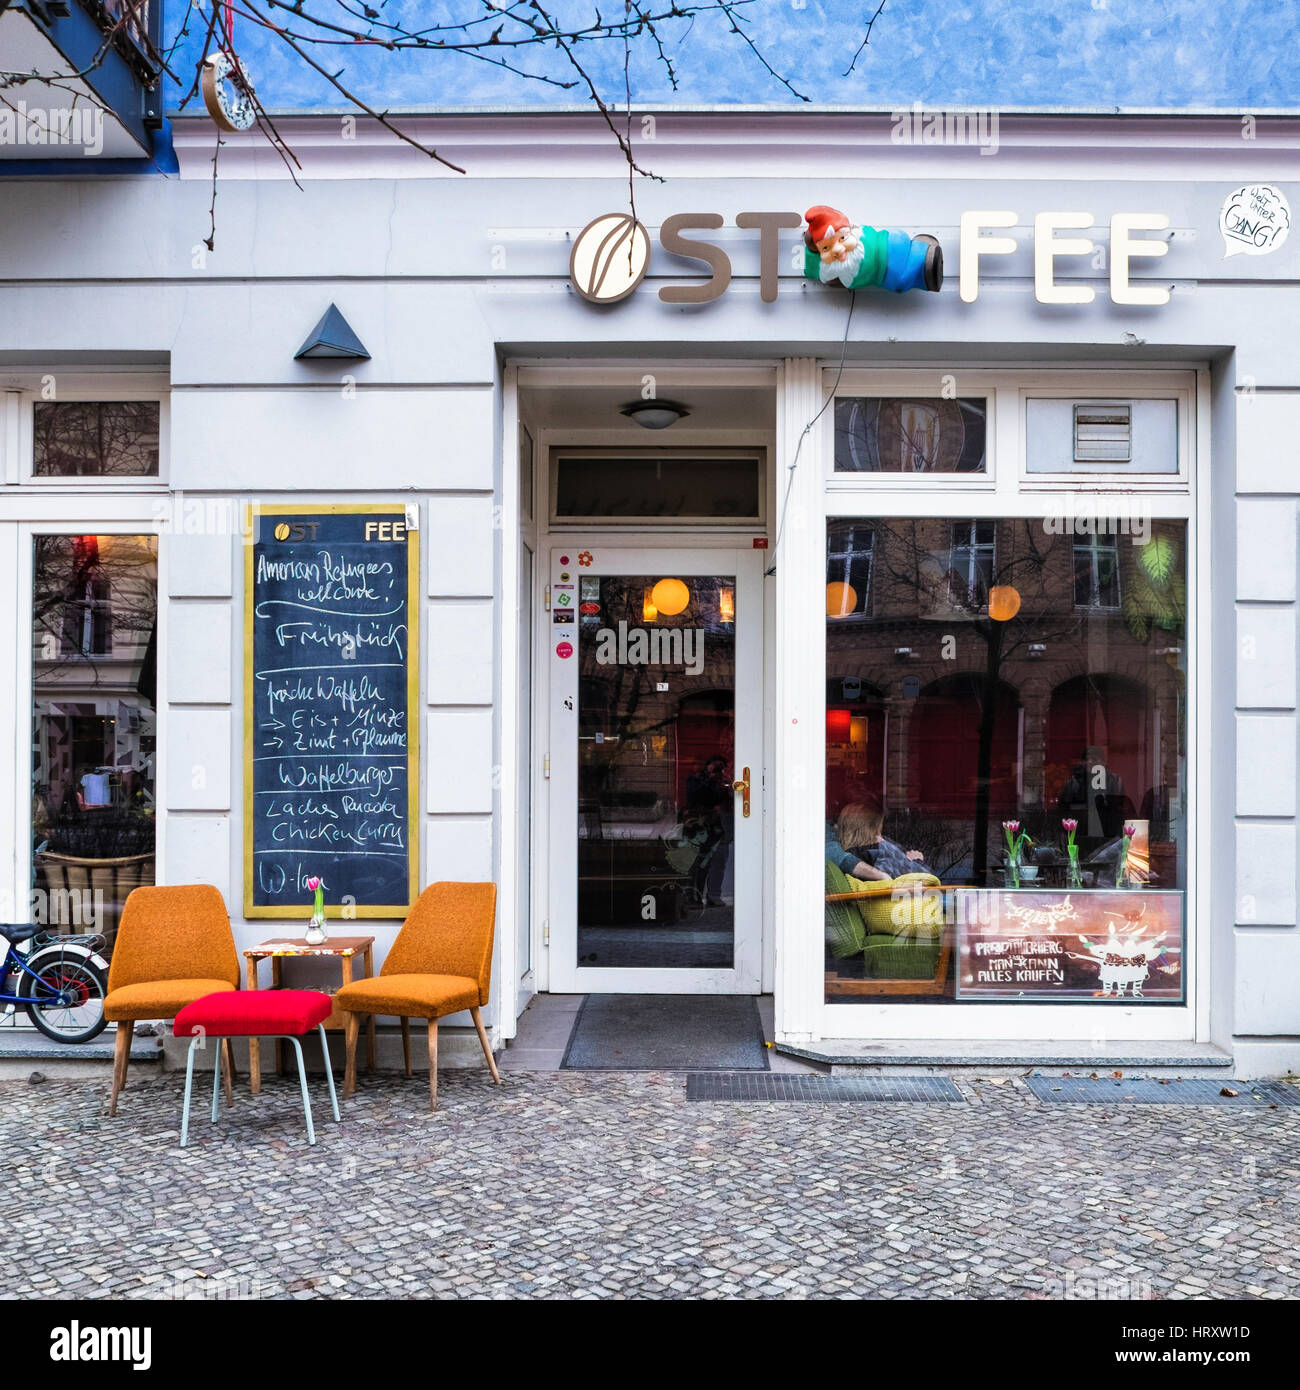 Berlin, Prenzlauer Berg., Ost Fee cafe  exterior with amusing chalkboard menu. American Refugees Welcome  - anti - Stock Image